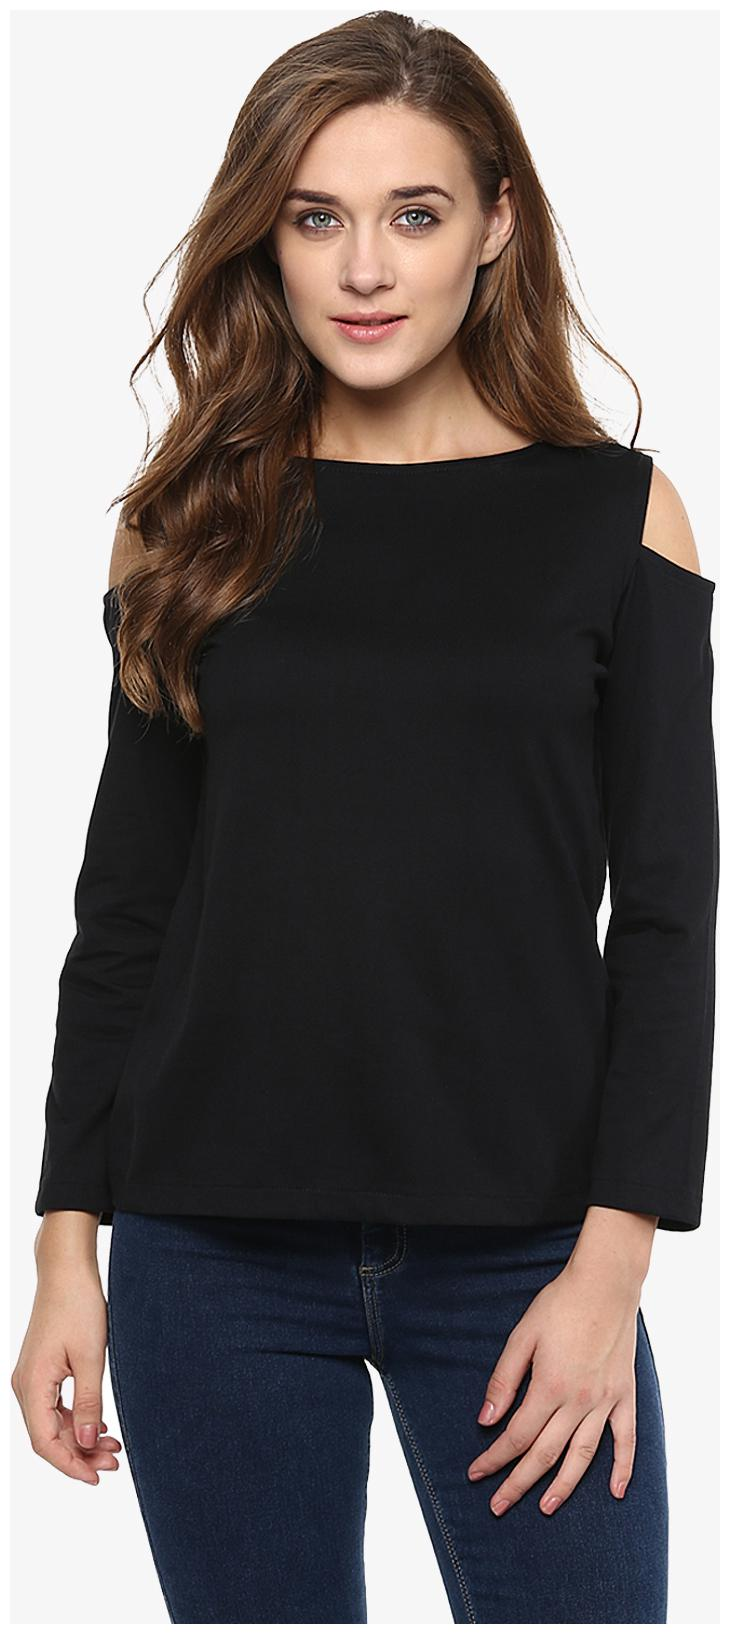 Miss Chase Women's Black Solid Shoulder Cut Out Full Sleeve Round Neck Tops